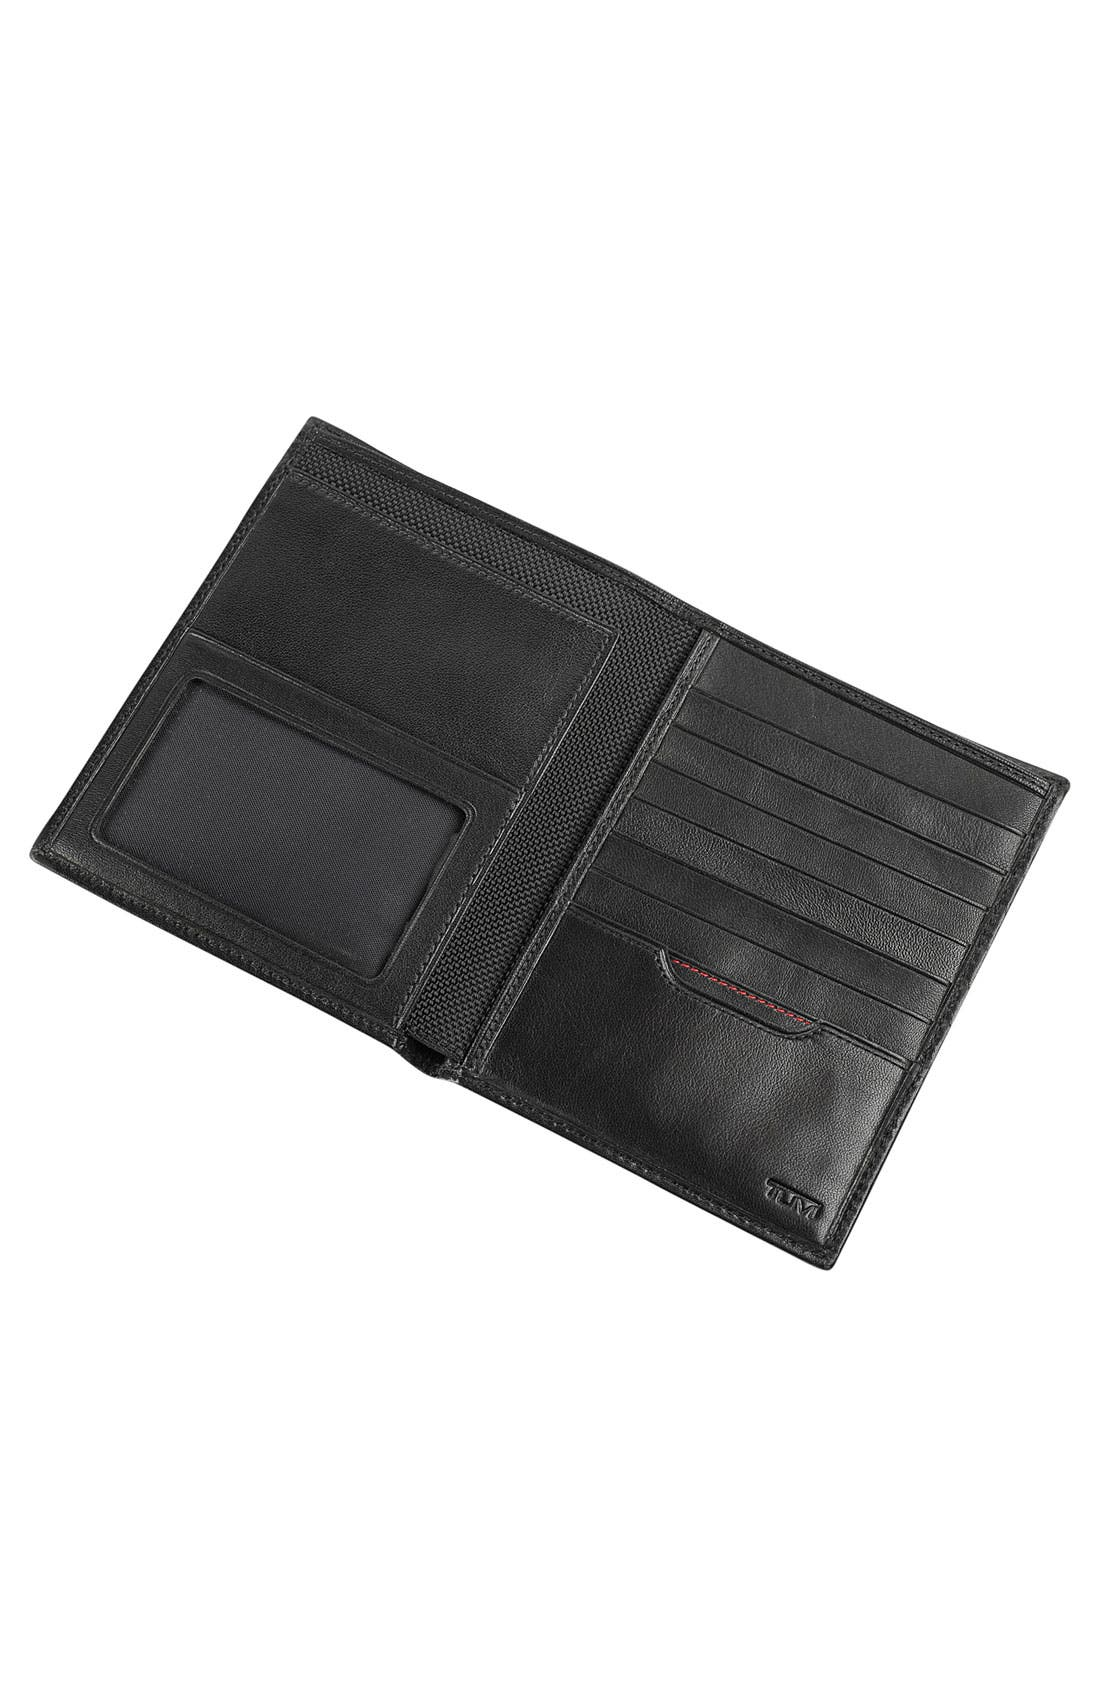 Delta Passport Case,                             Alternate thumbnail 5, color,                             BLACK